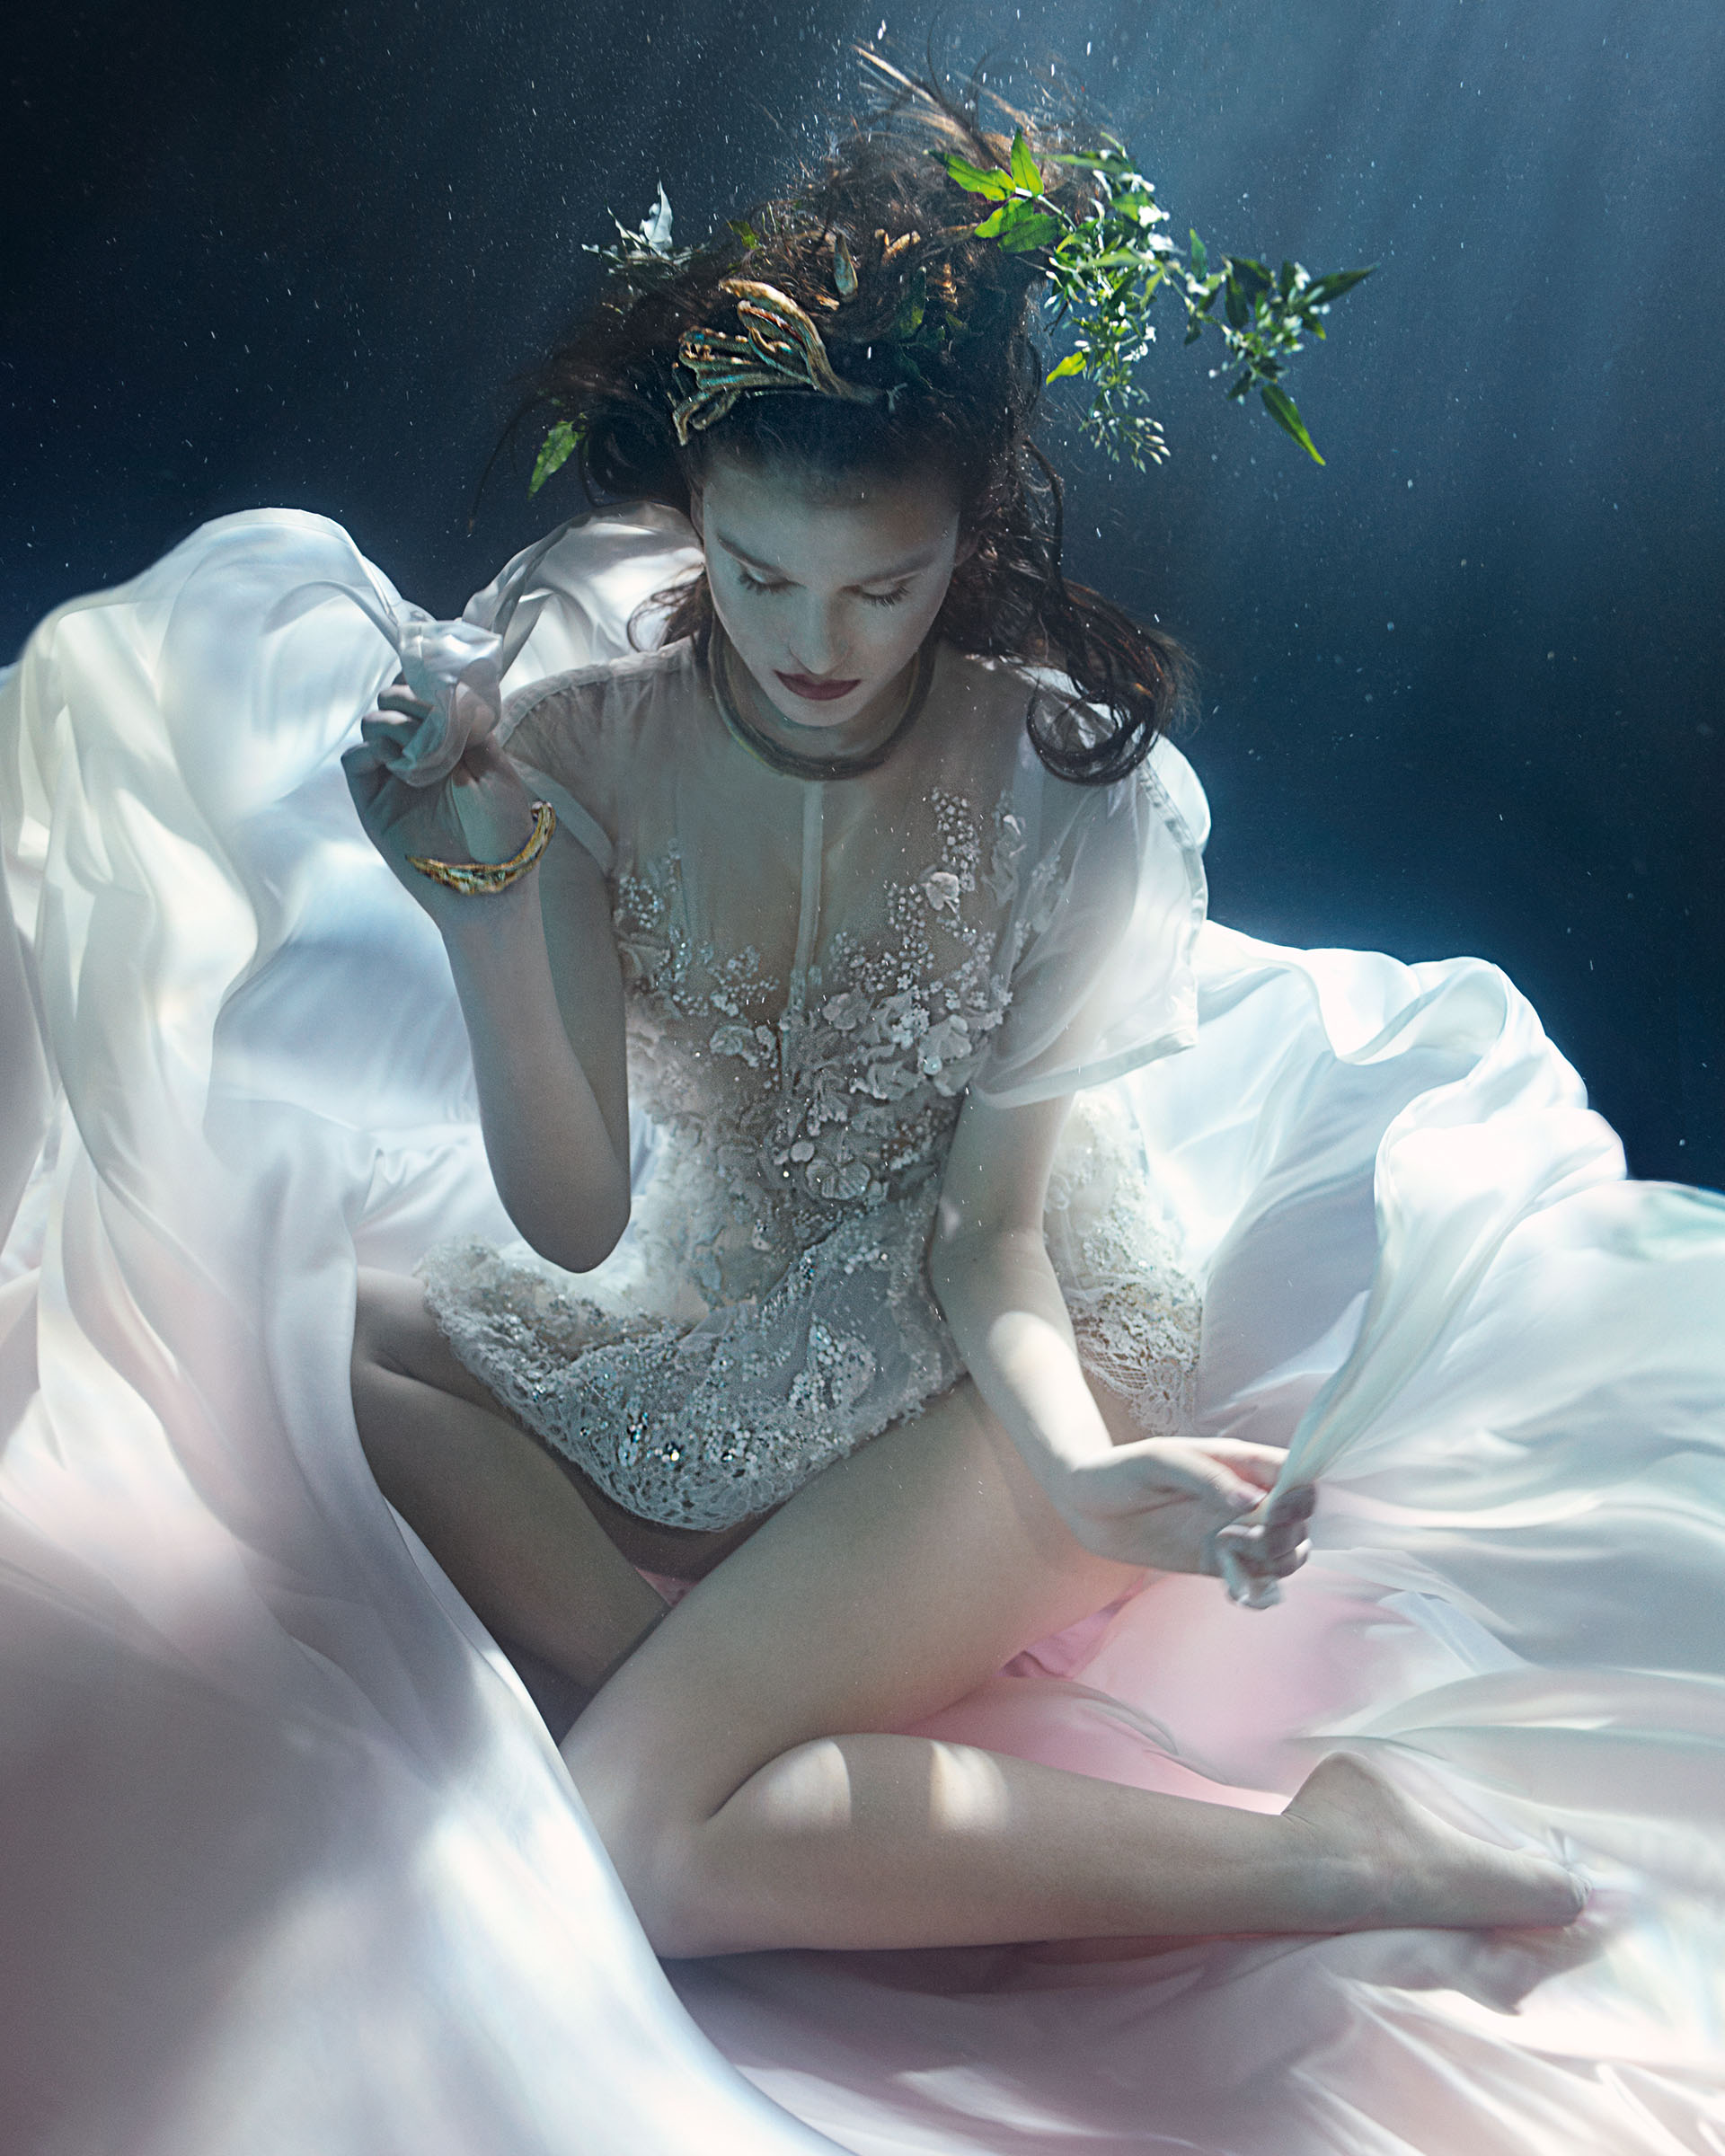 lydia-beesley-franziska-klein-by-zena-holloway-for-how-to-spend-it-may-2014-6